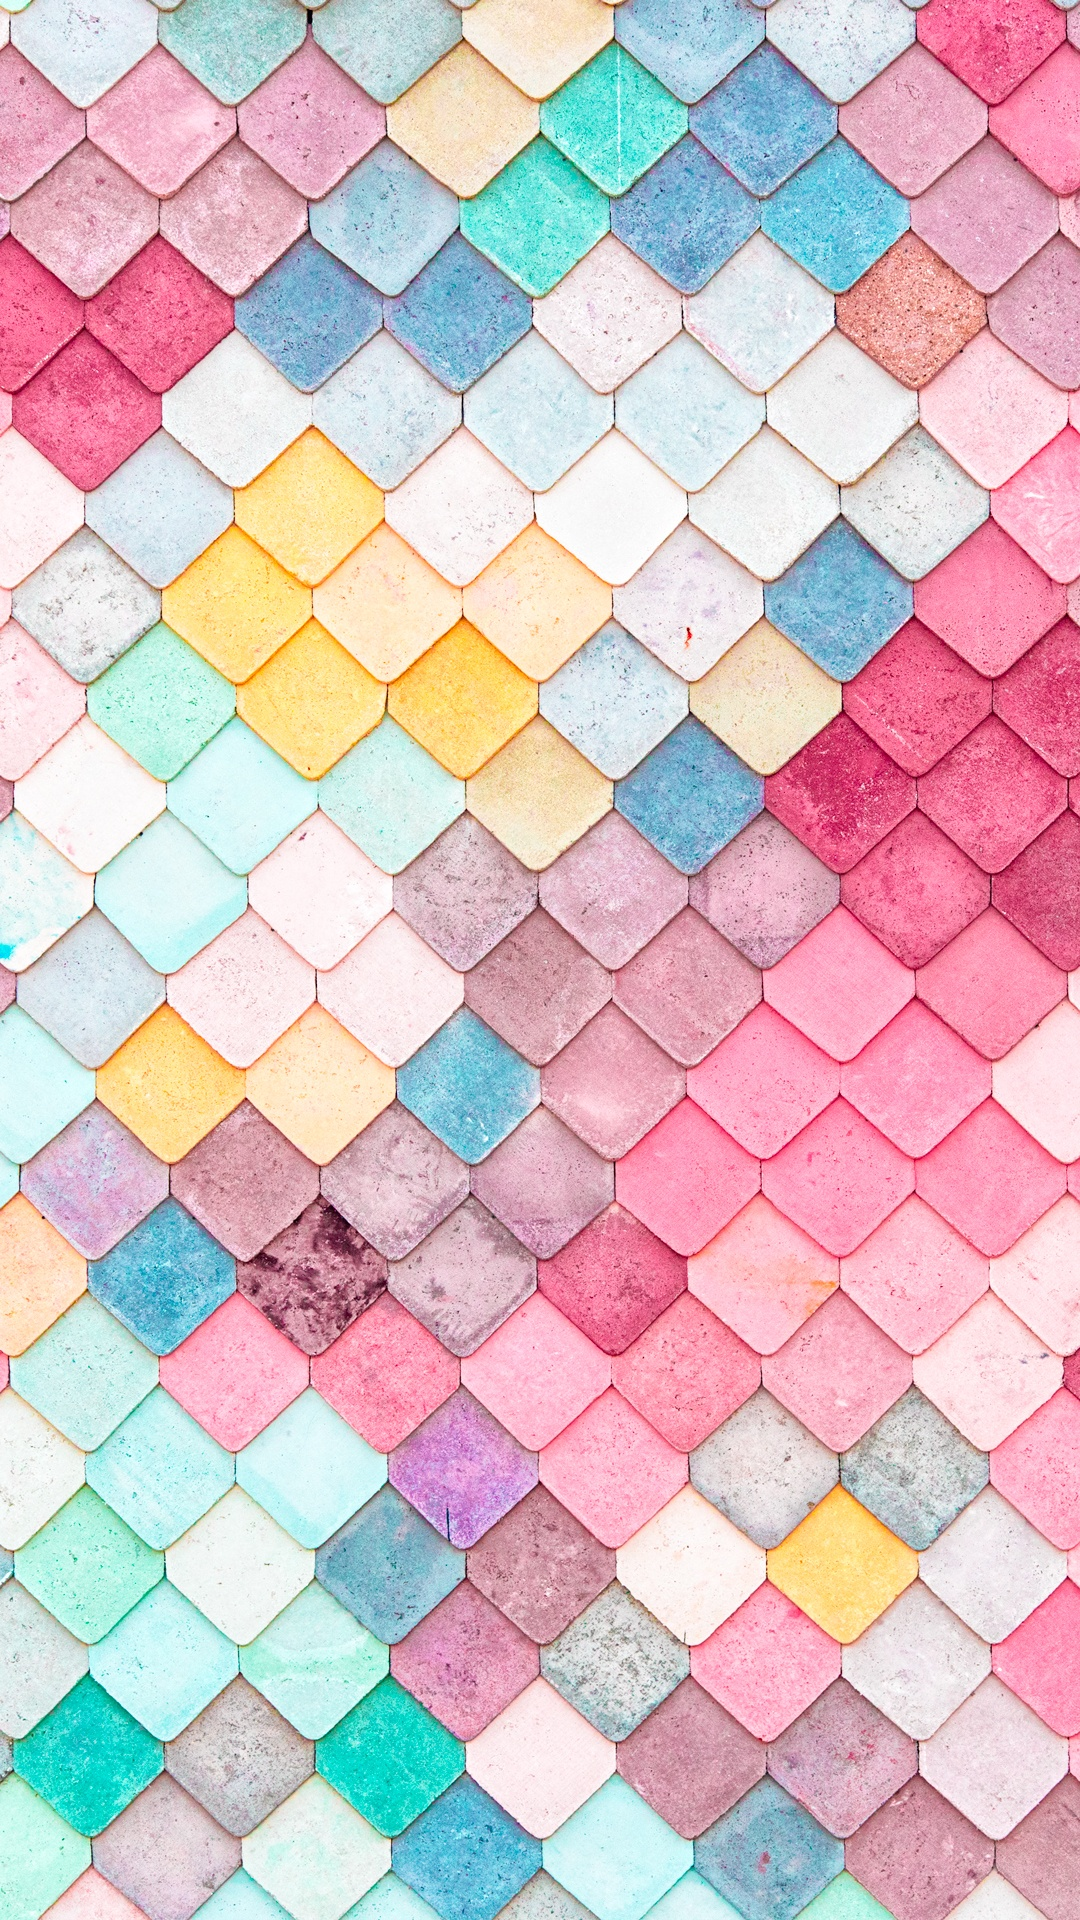 Colorful-Roof-Tiles-Pattern-iPhone-wallpaper-wpc5803584